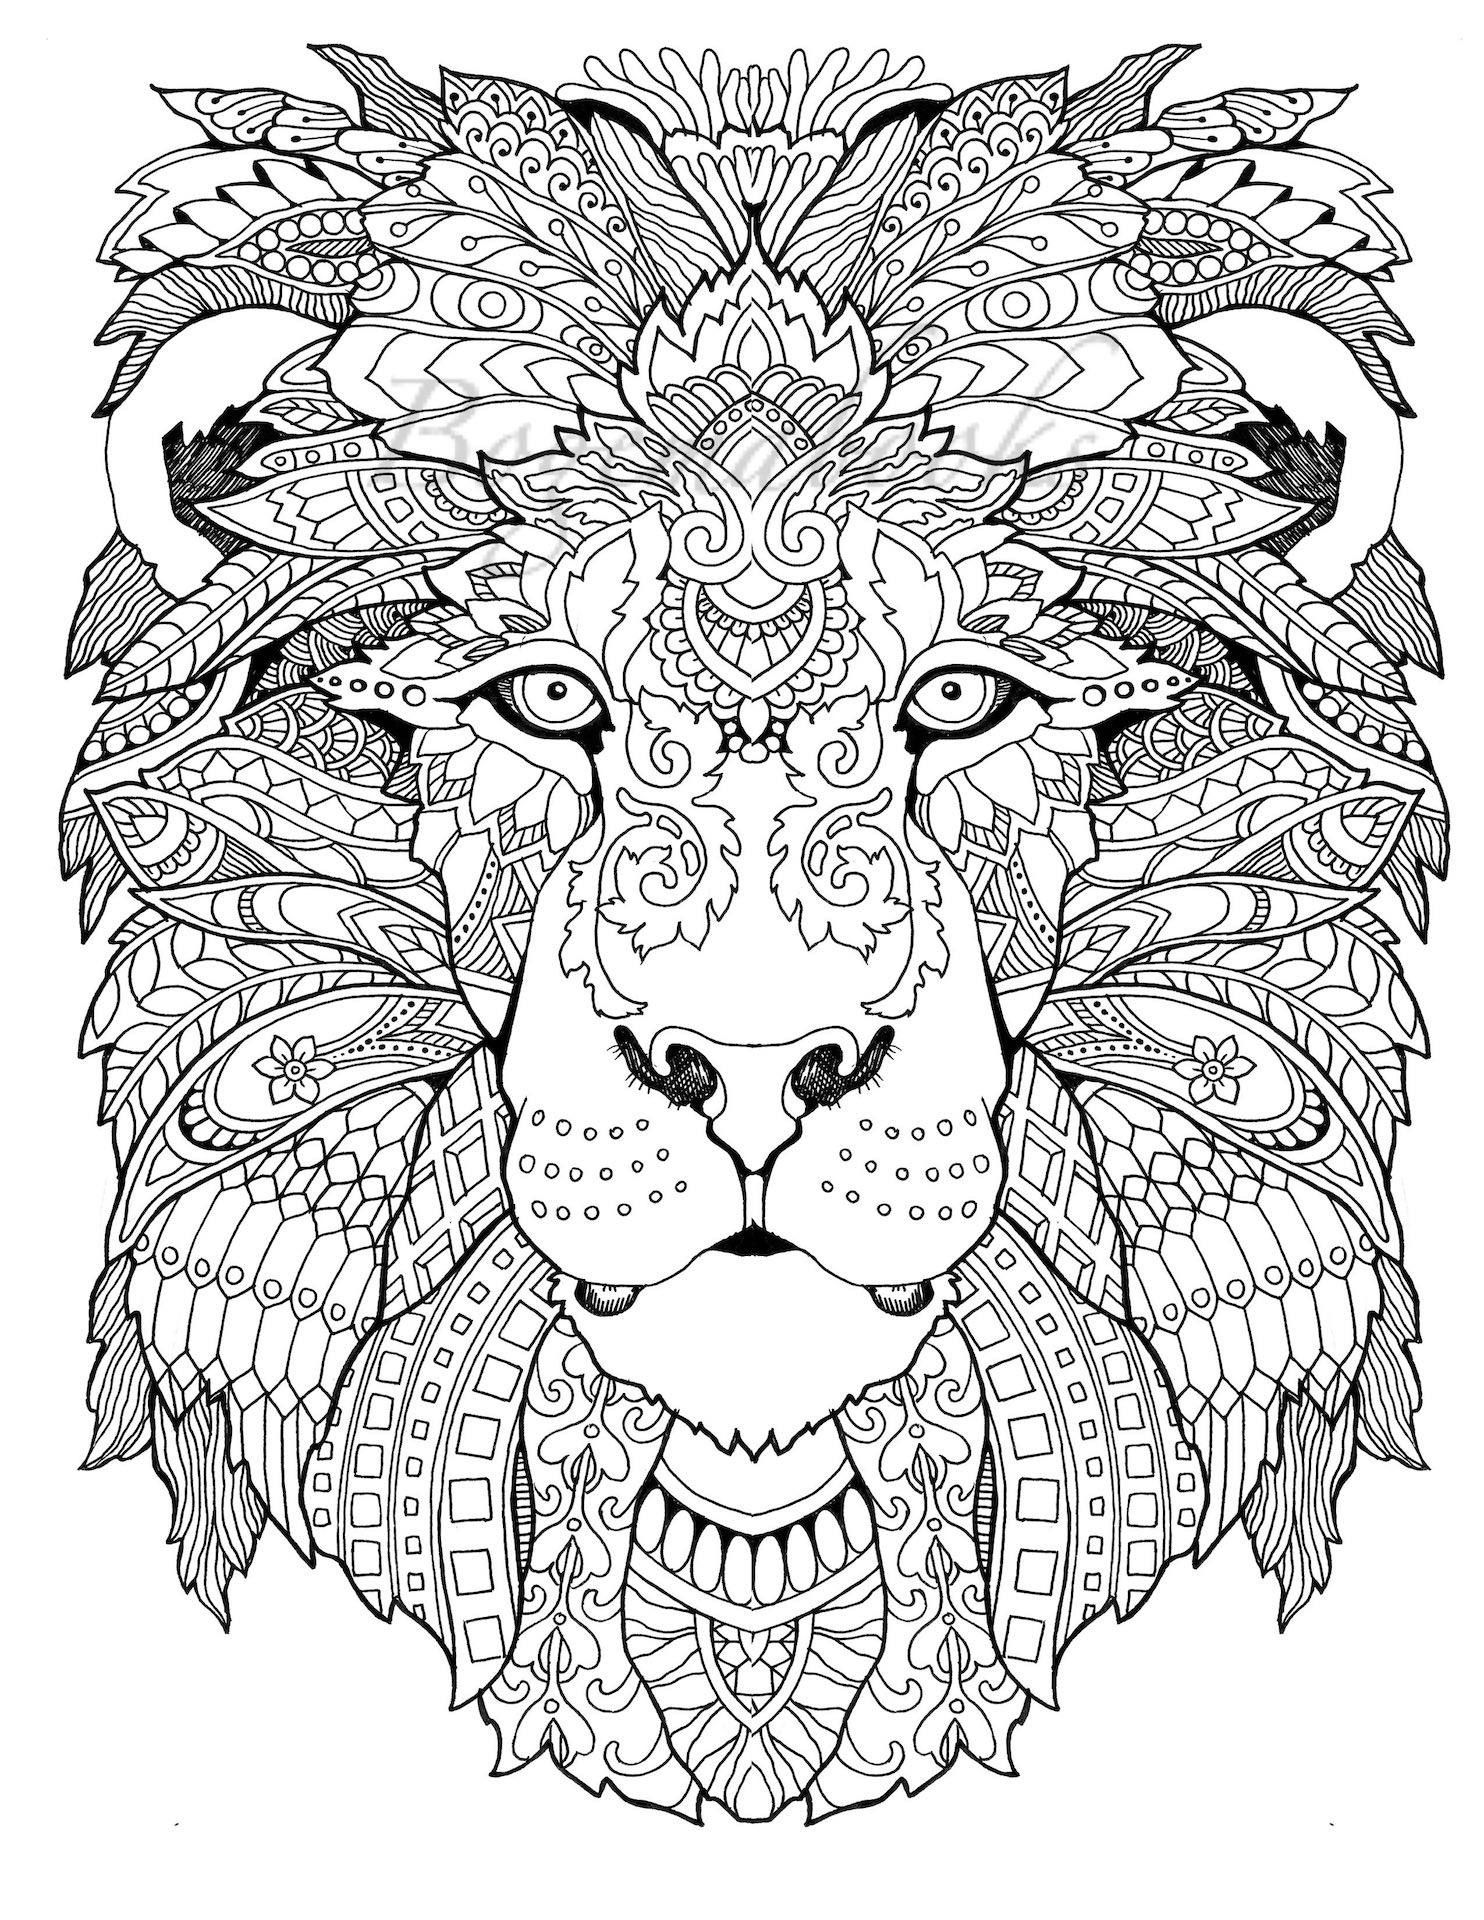 Coloring Sheet Lion